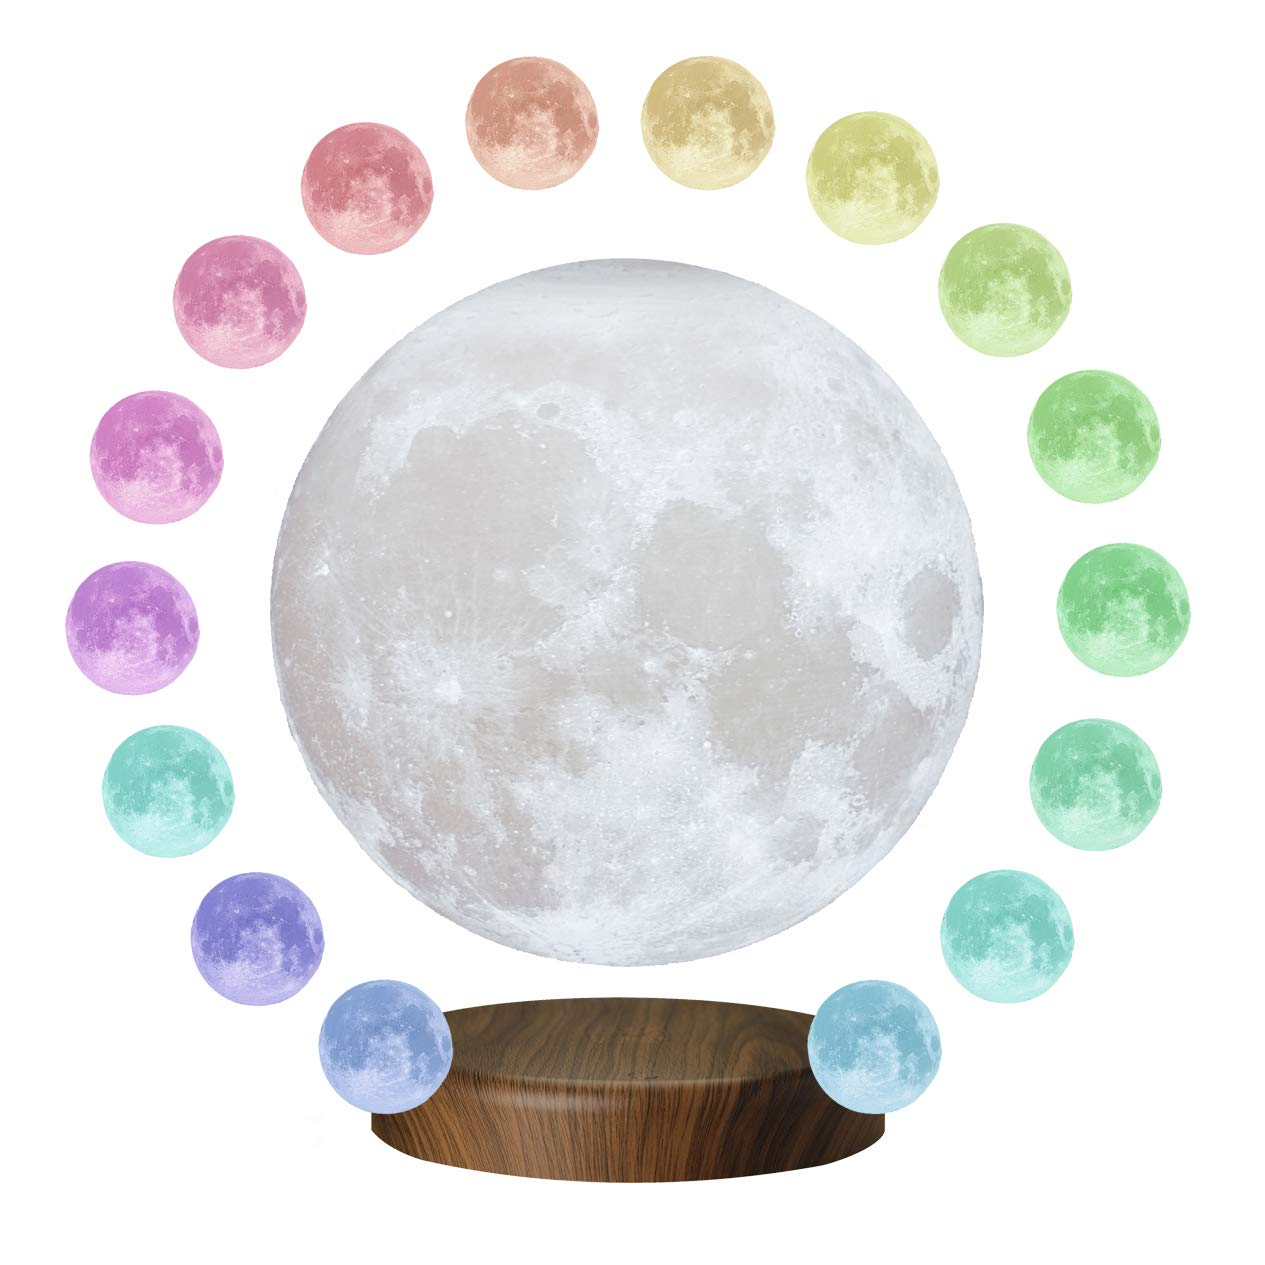 KUNGKEN Magnetic Floating Levitation Moon 3D Printing LED Night Light 16 Colors RGB Rotating Lunar Table Lamp for Home Desk Office Decor 7.1IN